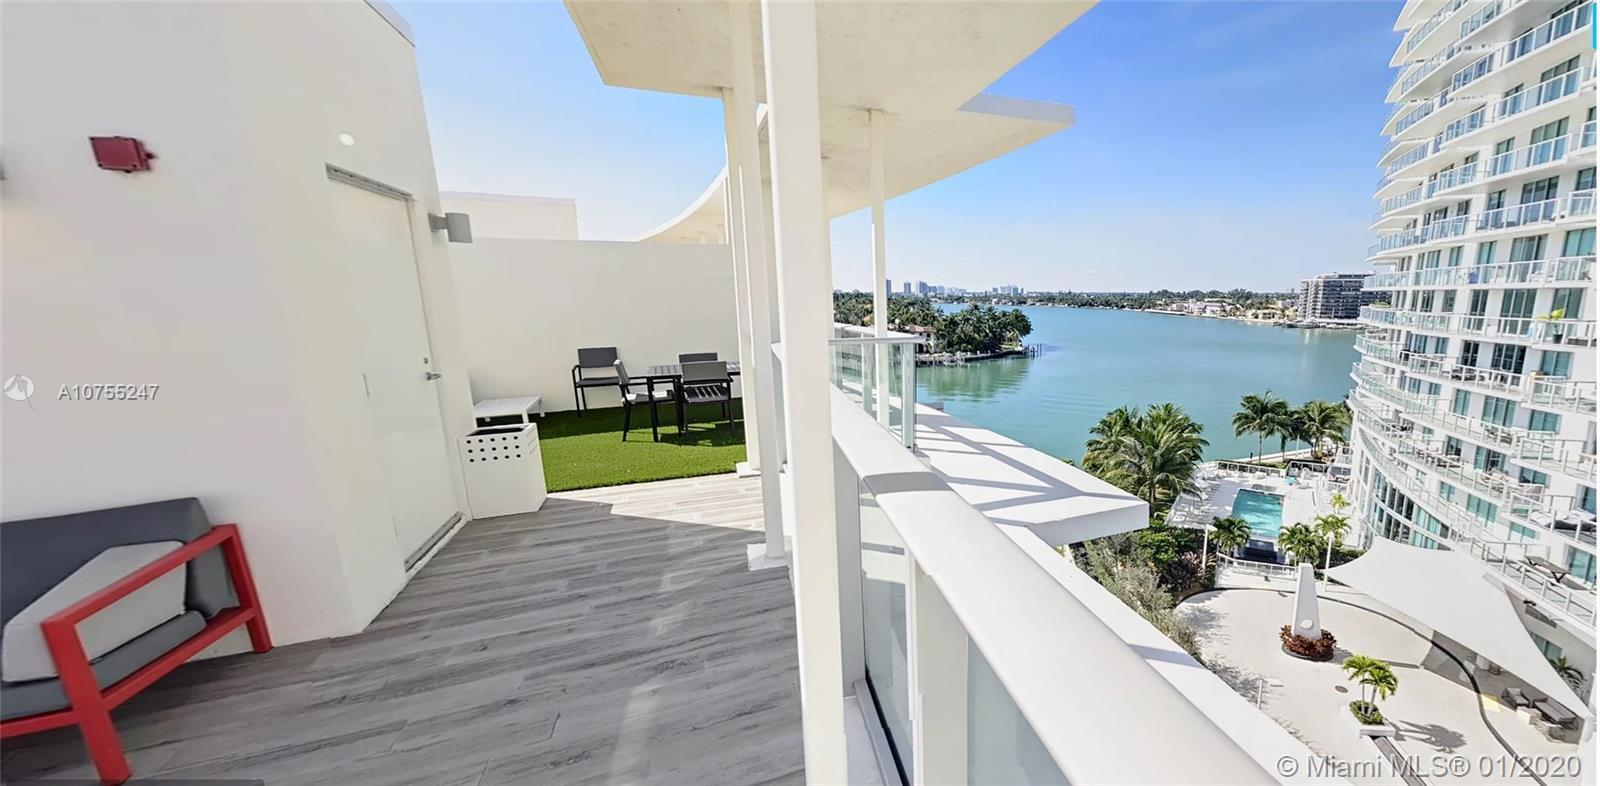 This Stunning Peloro Penthouse with large Rooftop Terrace is Situated on the western shores of the i